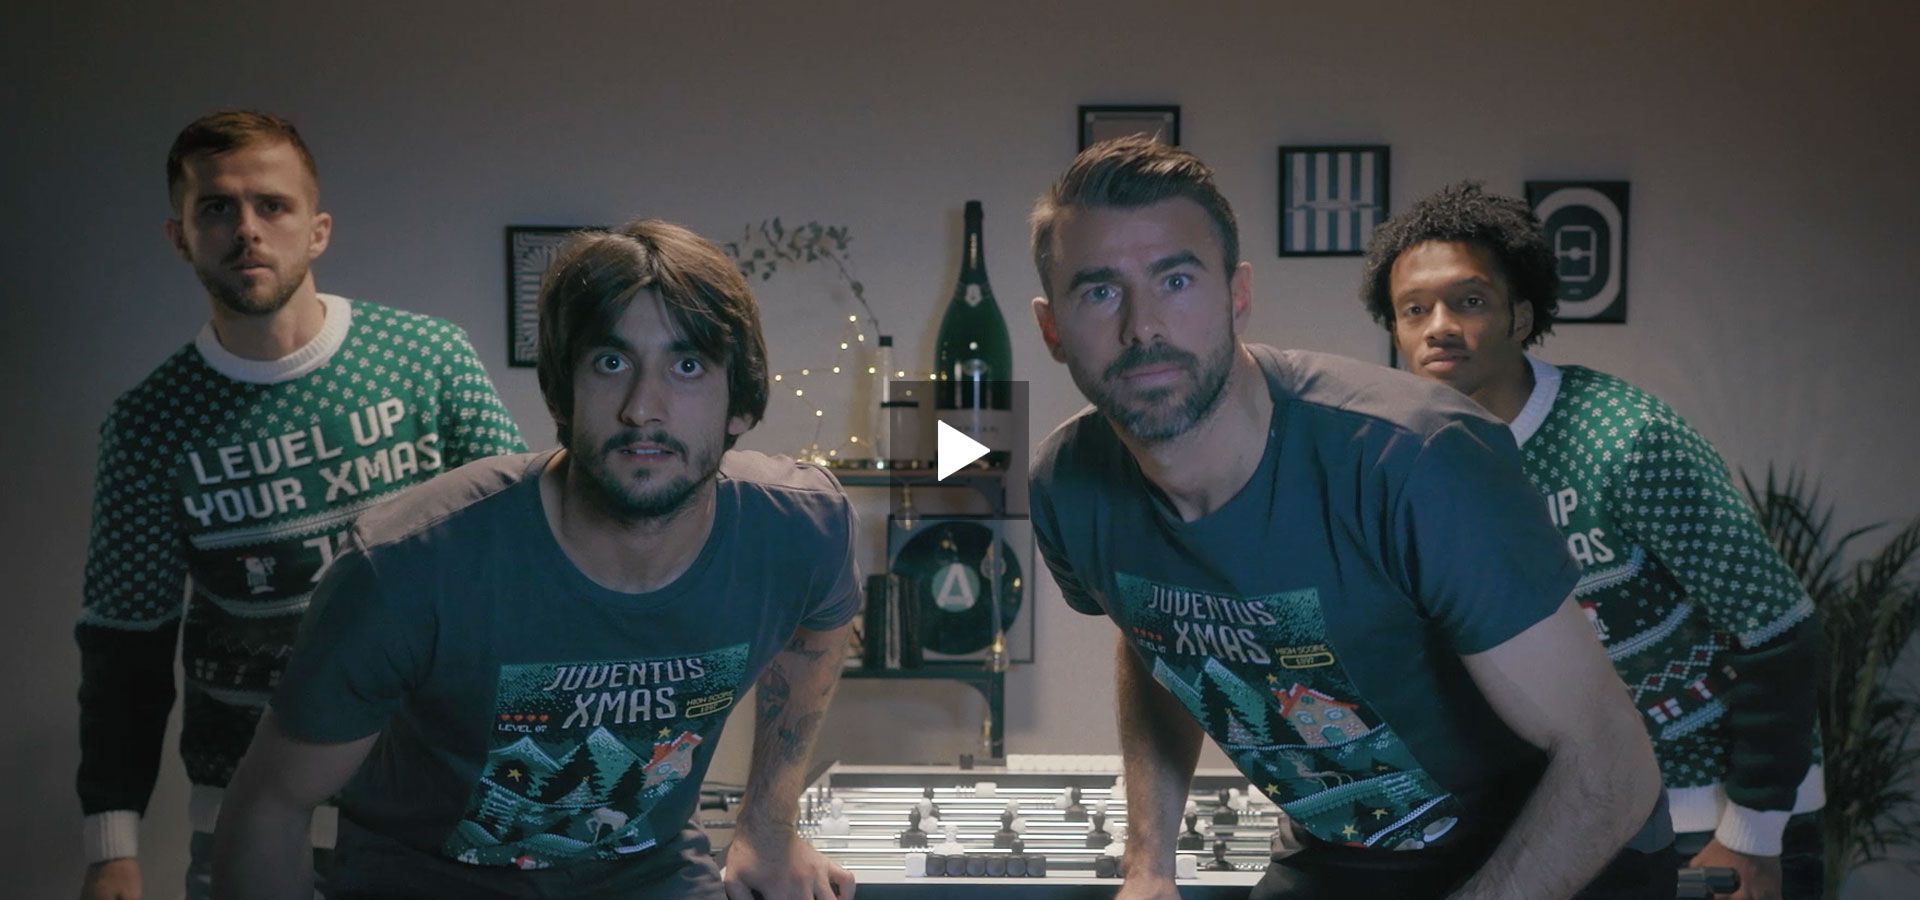 Juventus - Level Up Your Xmas - Produzione video - Commercial - Monkey Talkie